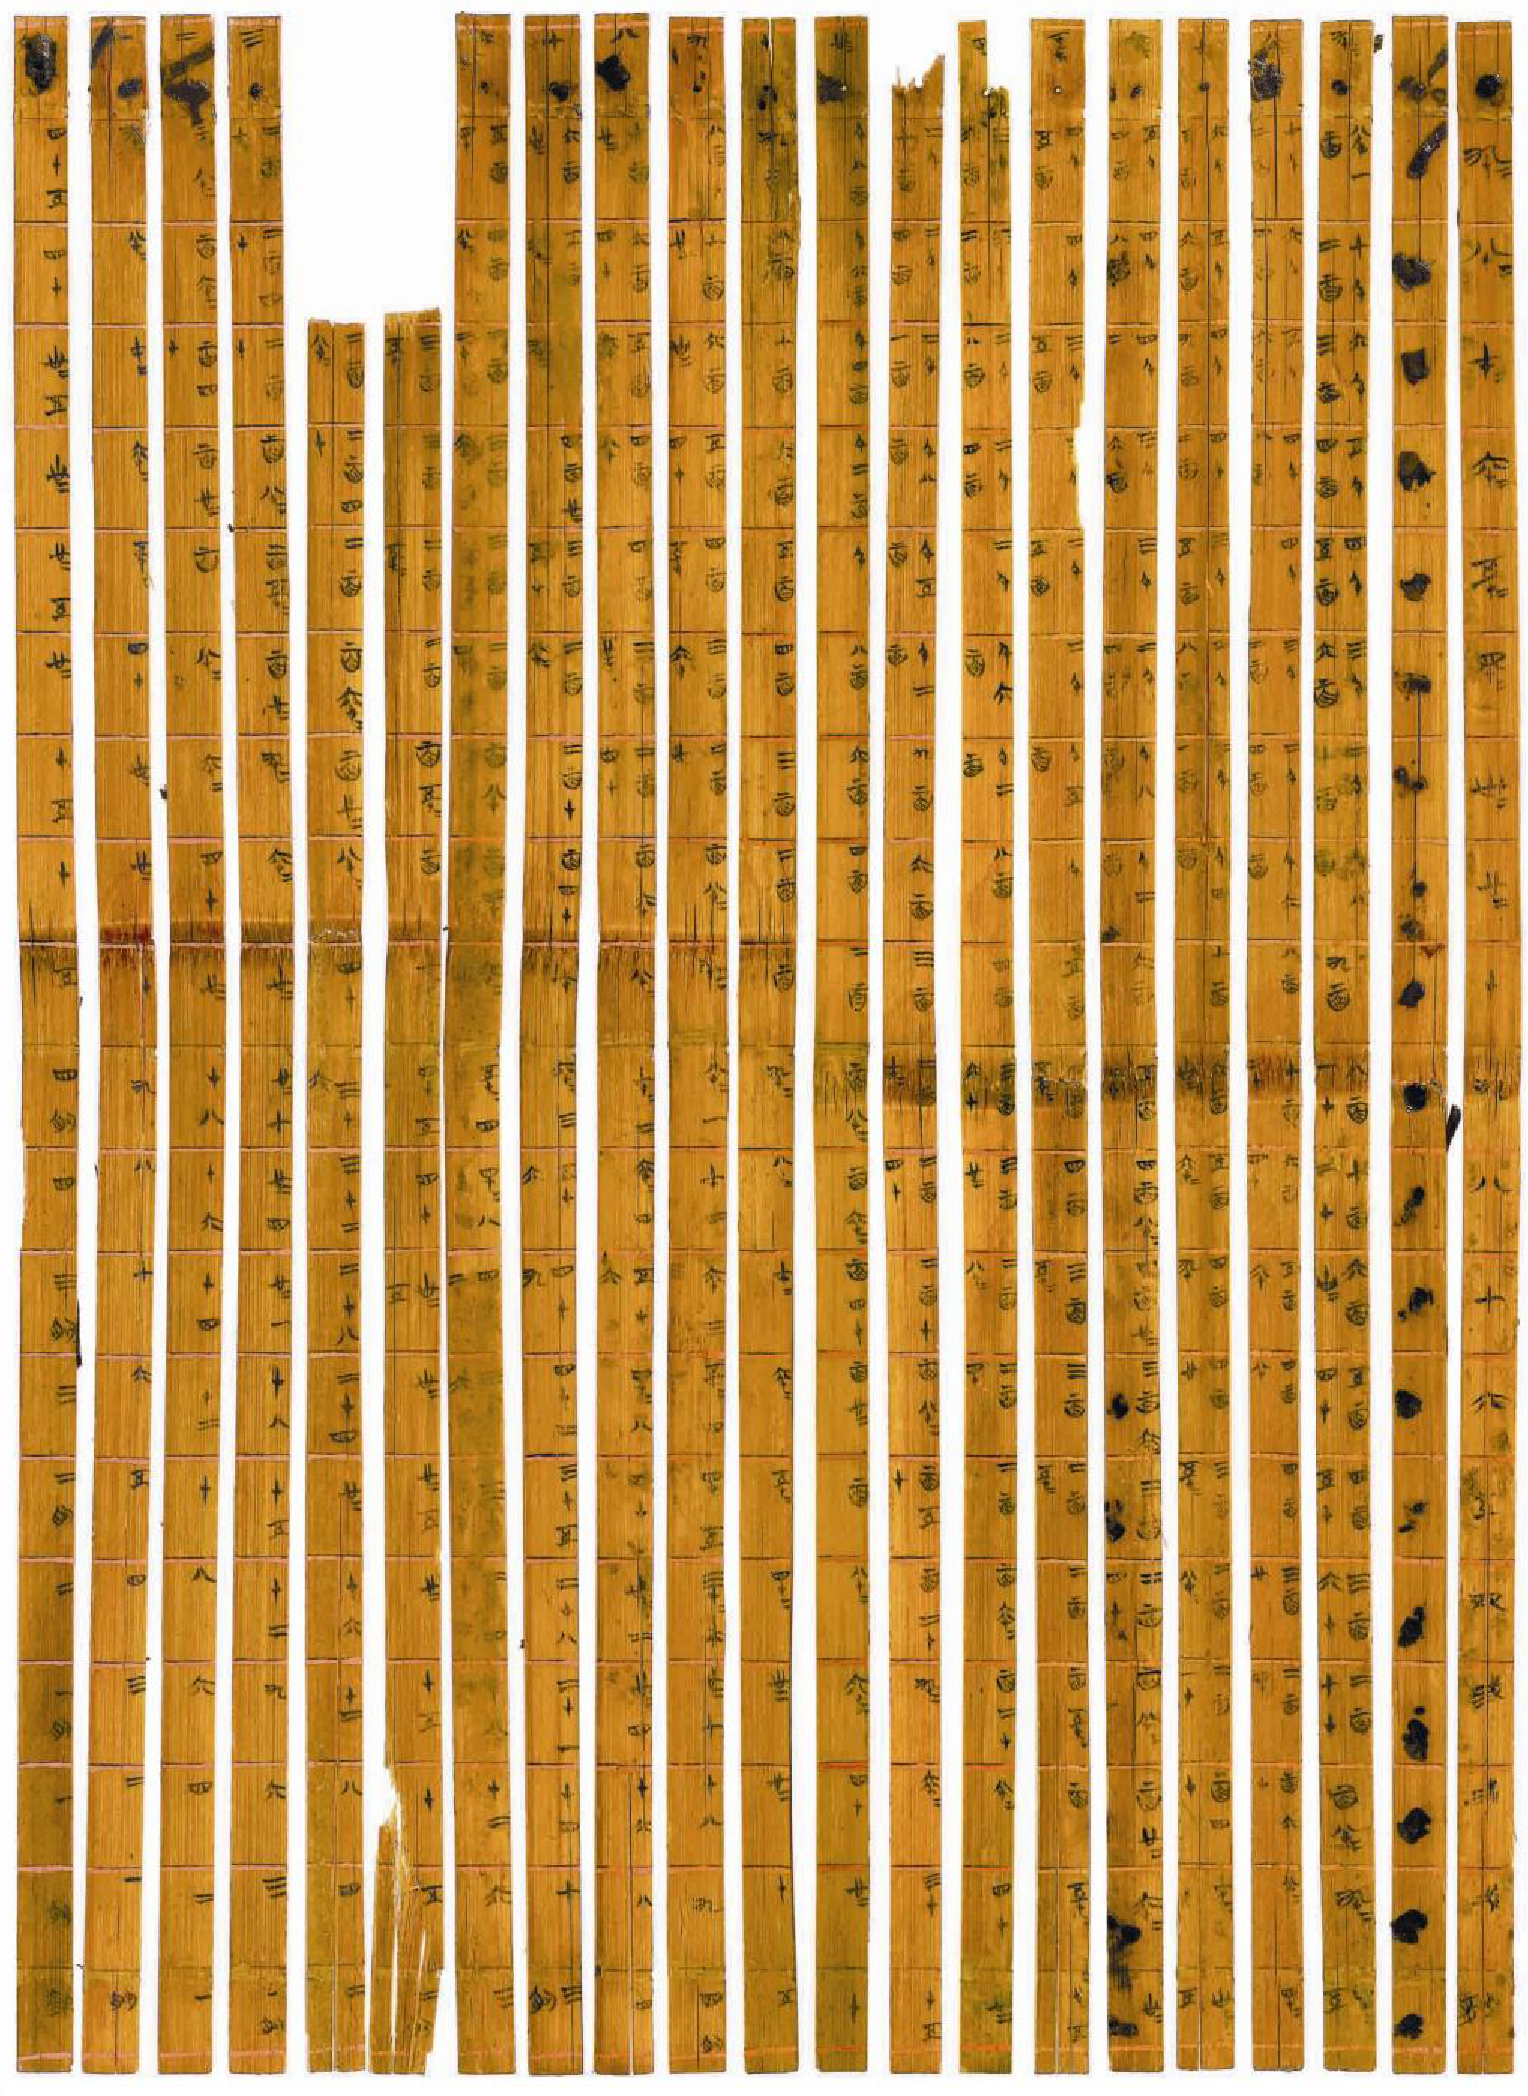 Multiplication Table Chart: Qinghuajian Suan Biao.jpg - Wikimedia Commons,Chart